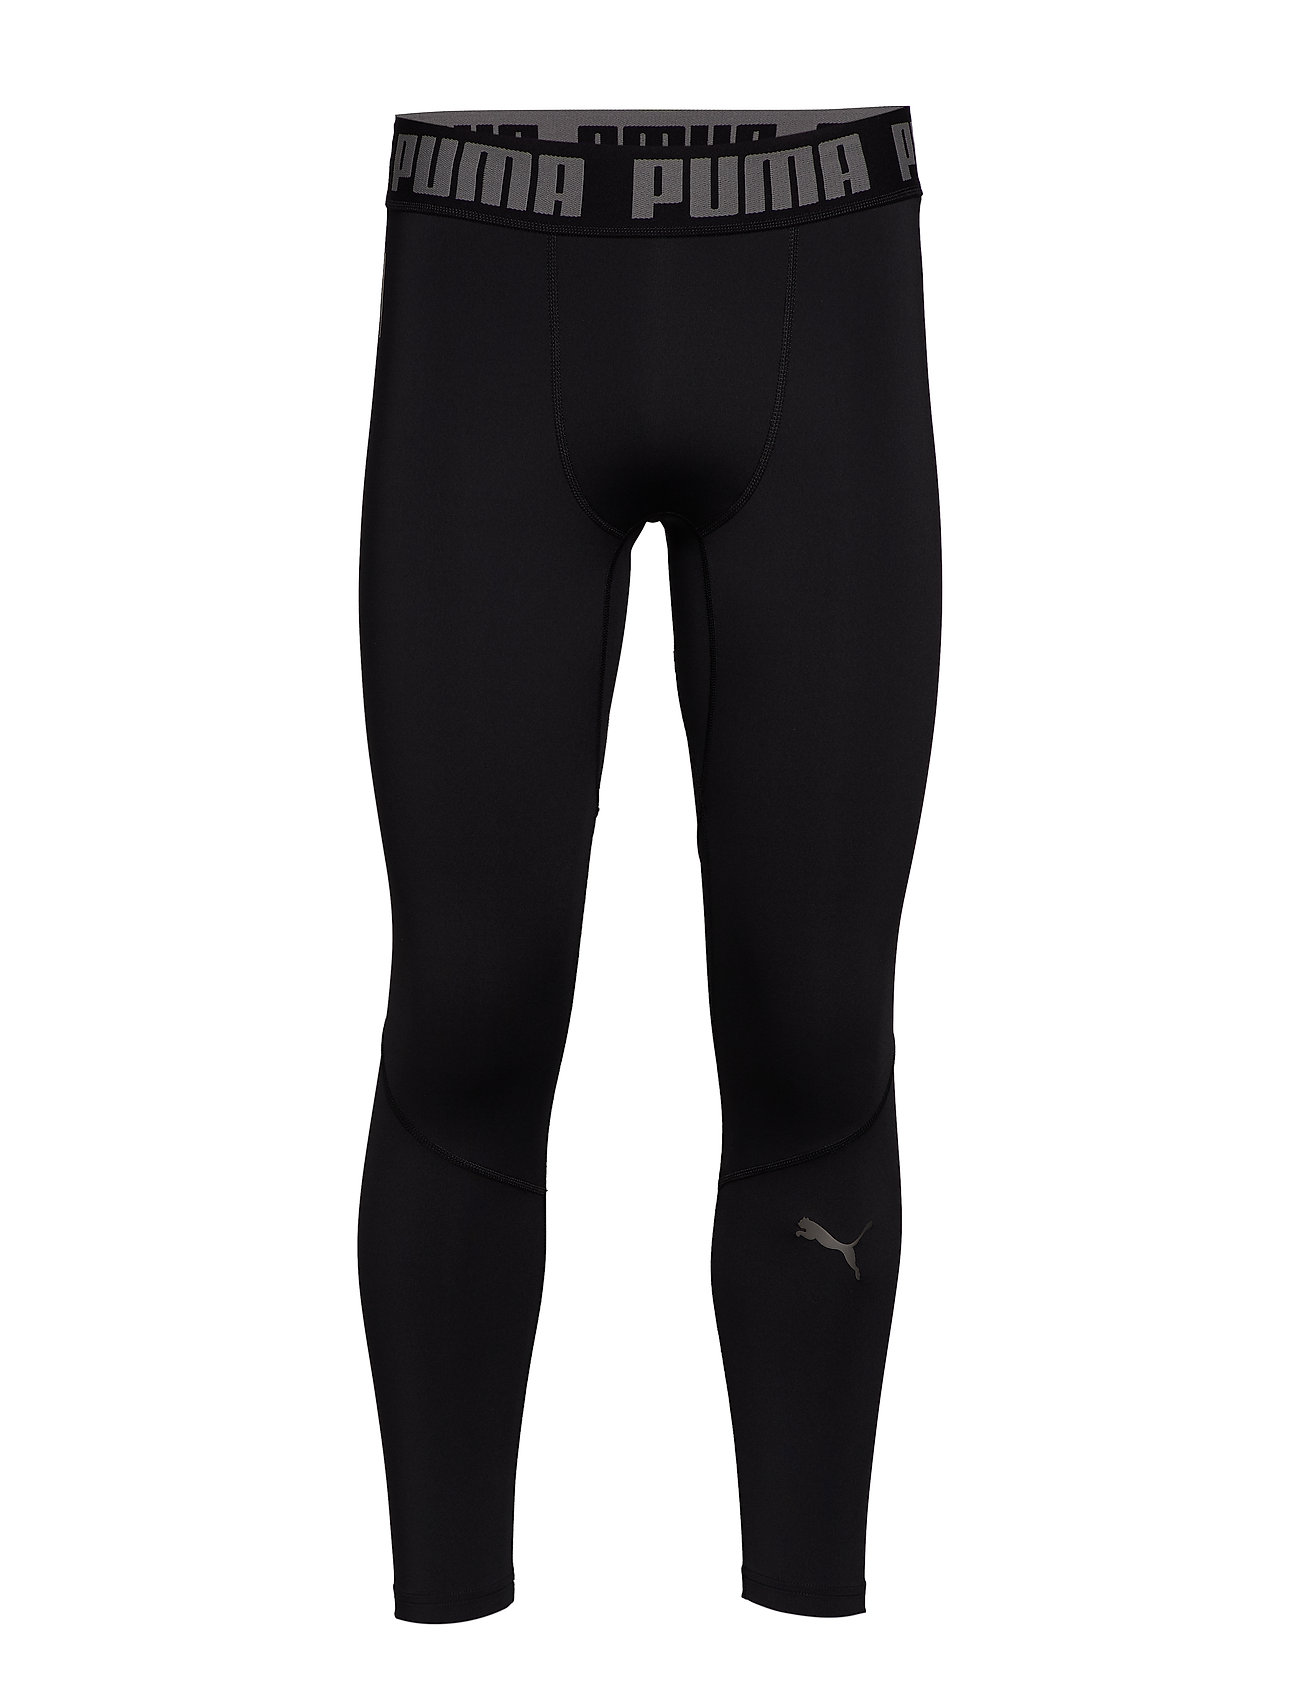 PUMA PUMA BND Long Tight - PUMA BLACK